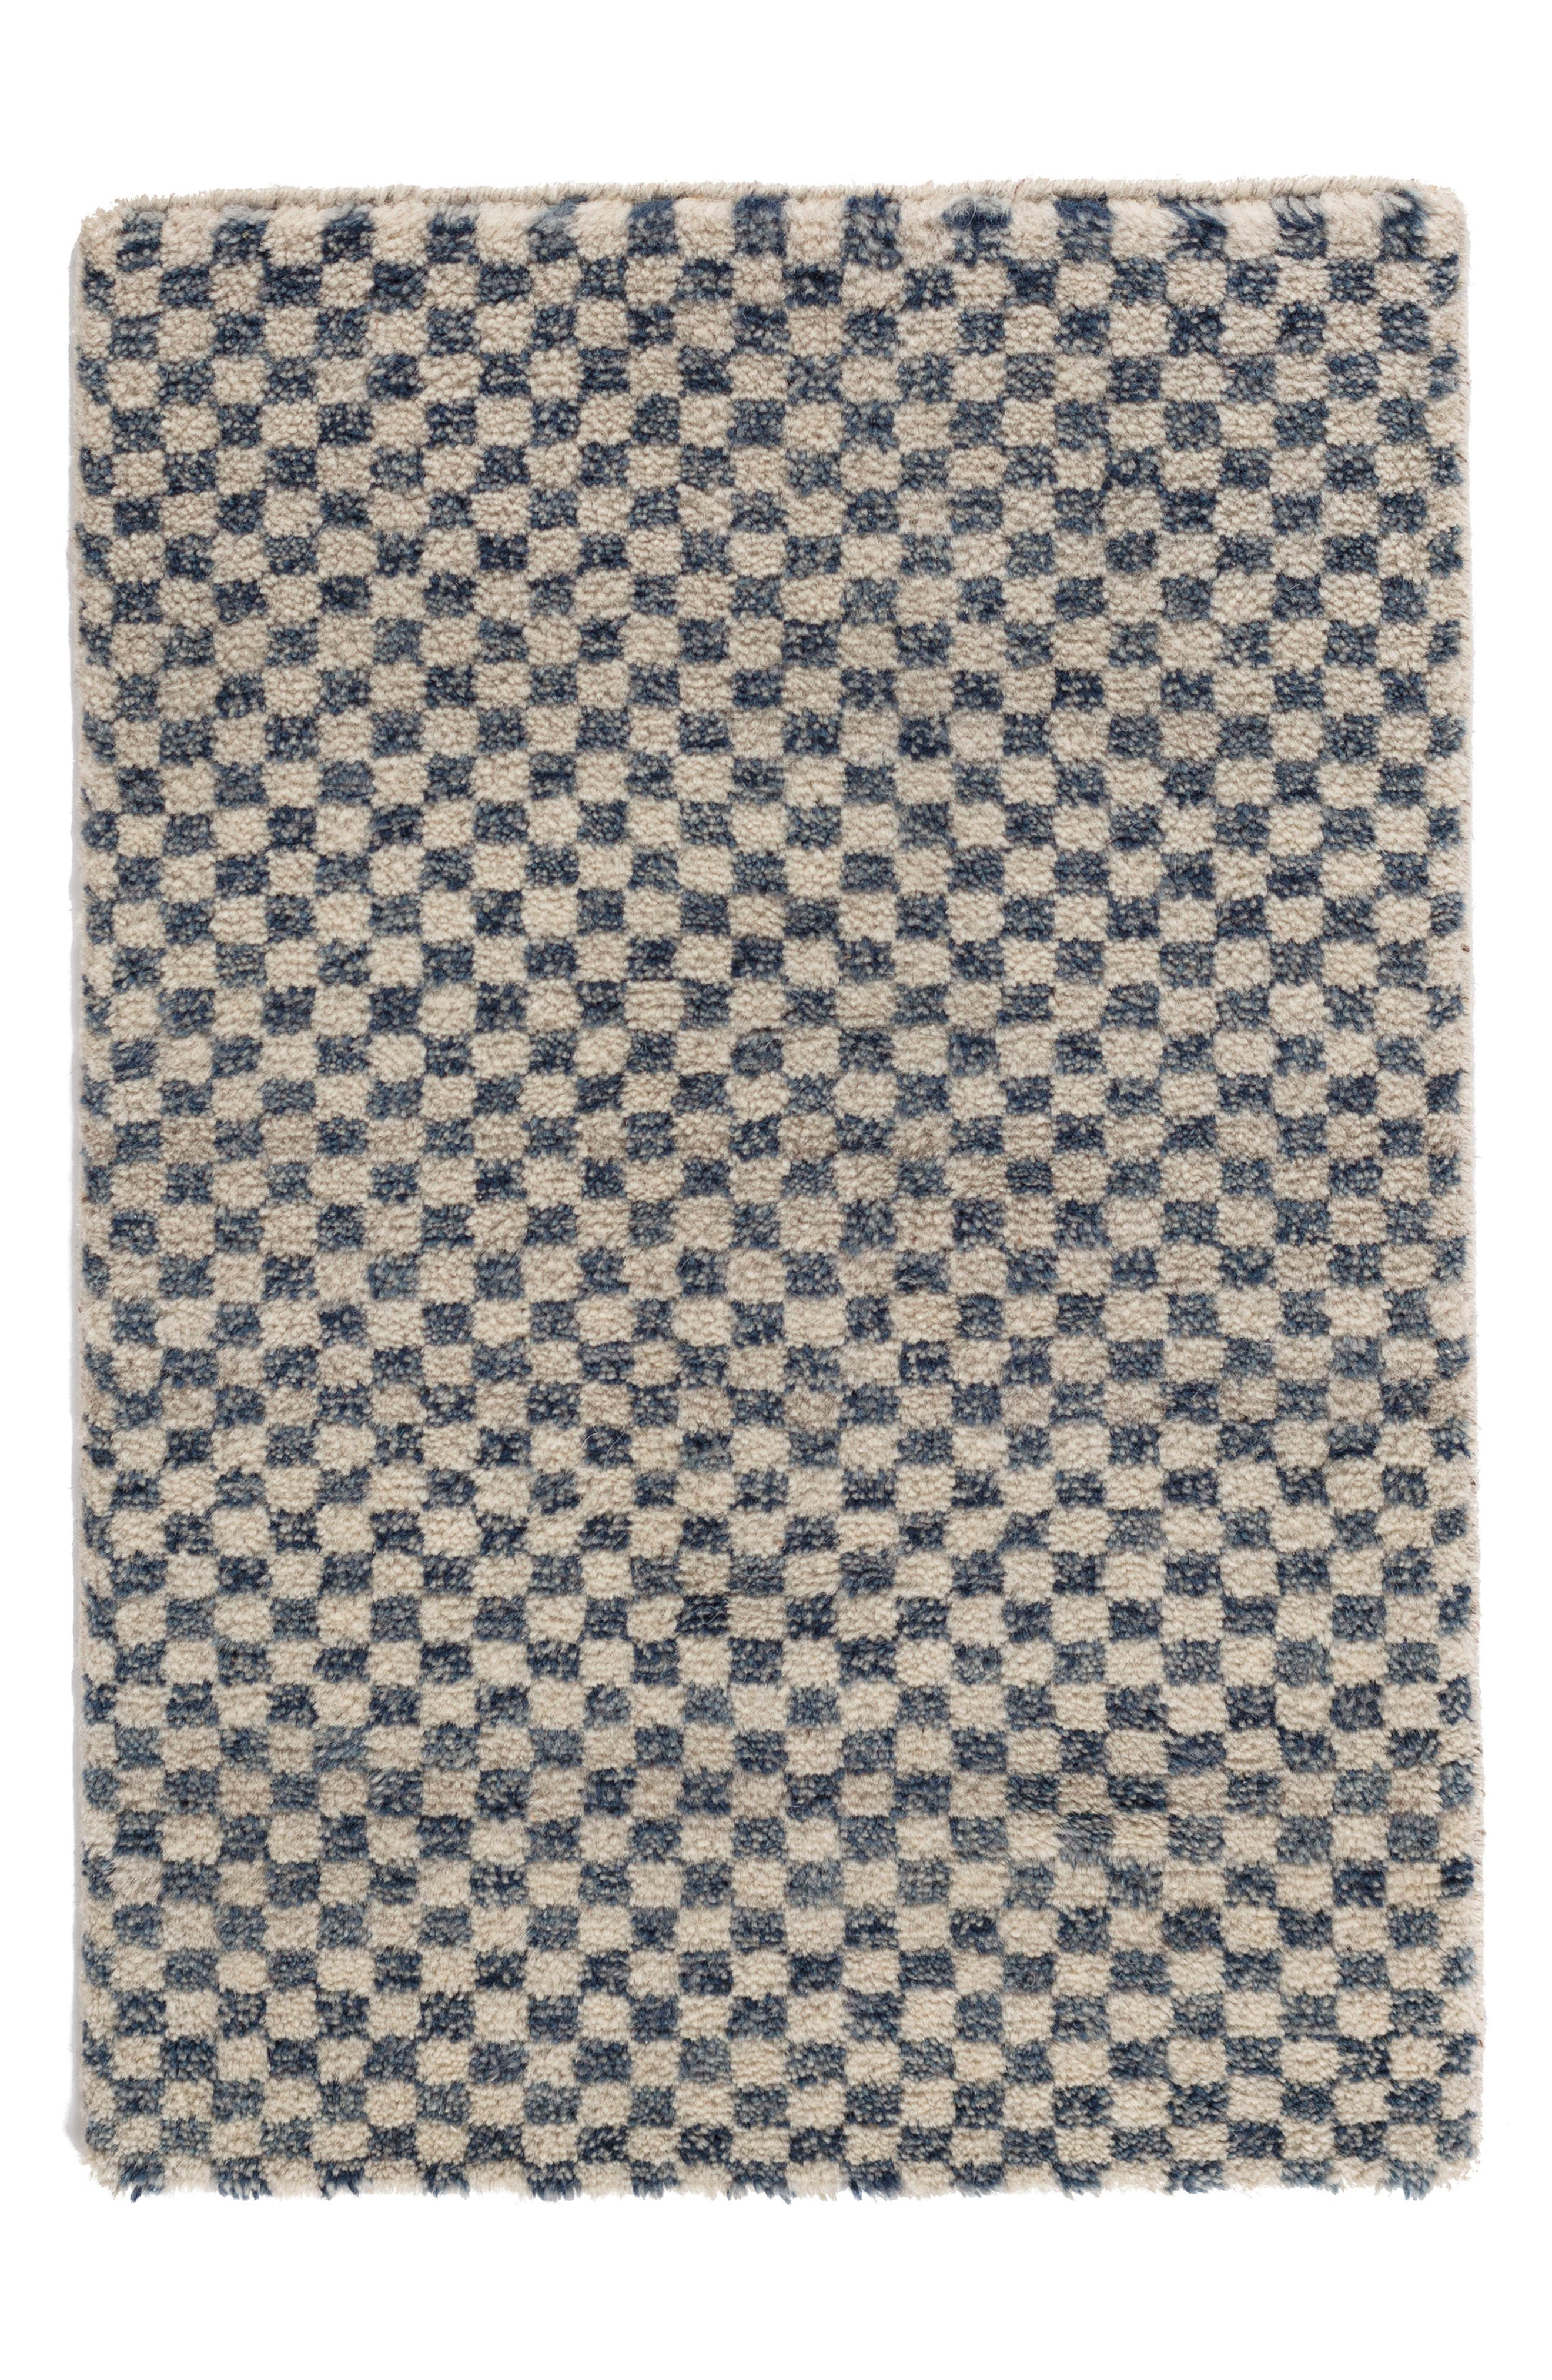 Citra Hand Knotted Rug,                         Main,                         color, Denim